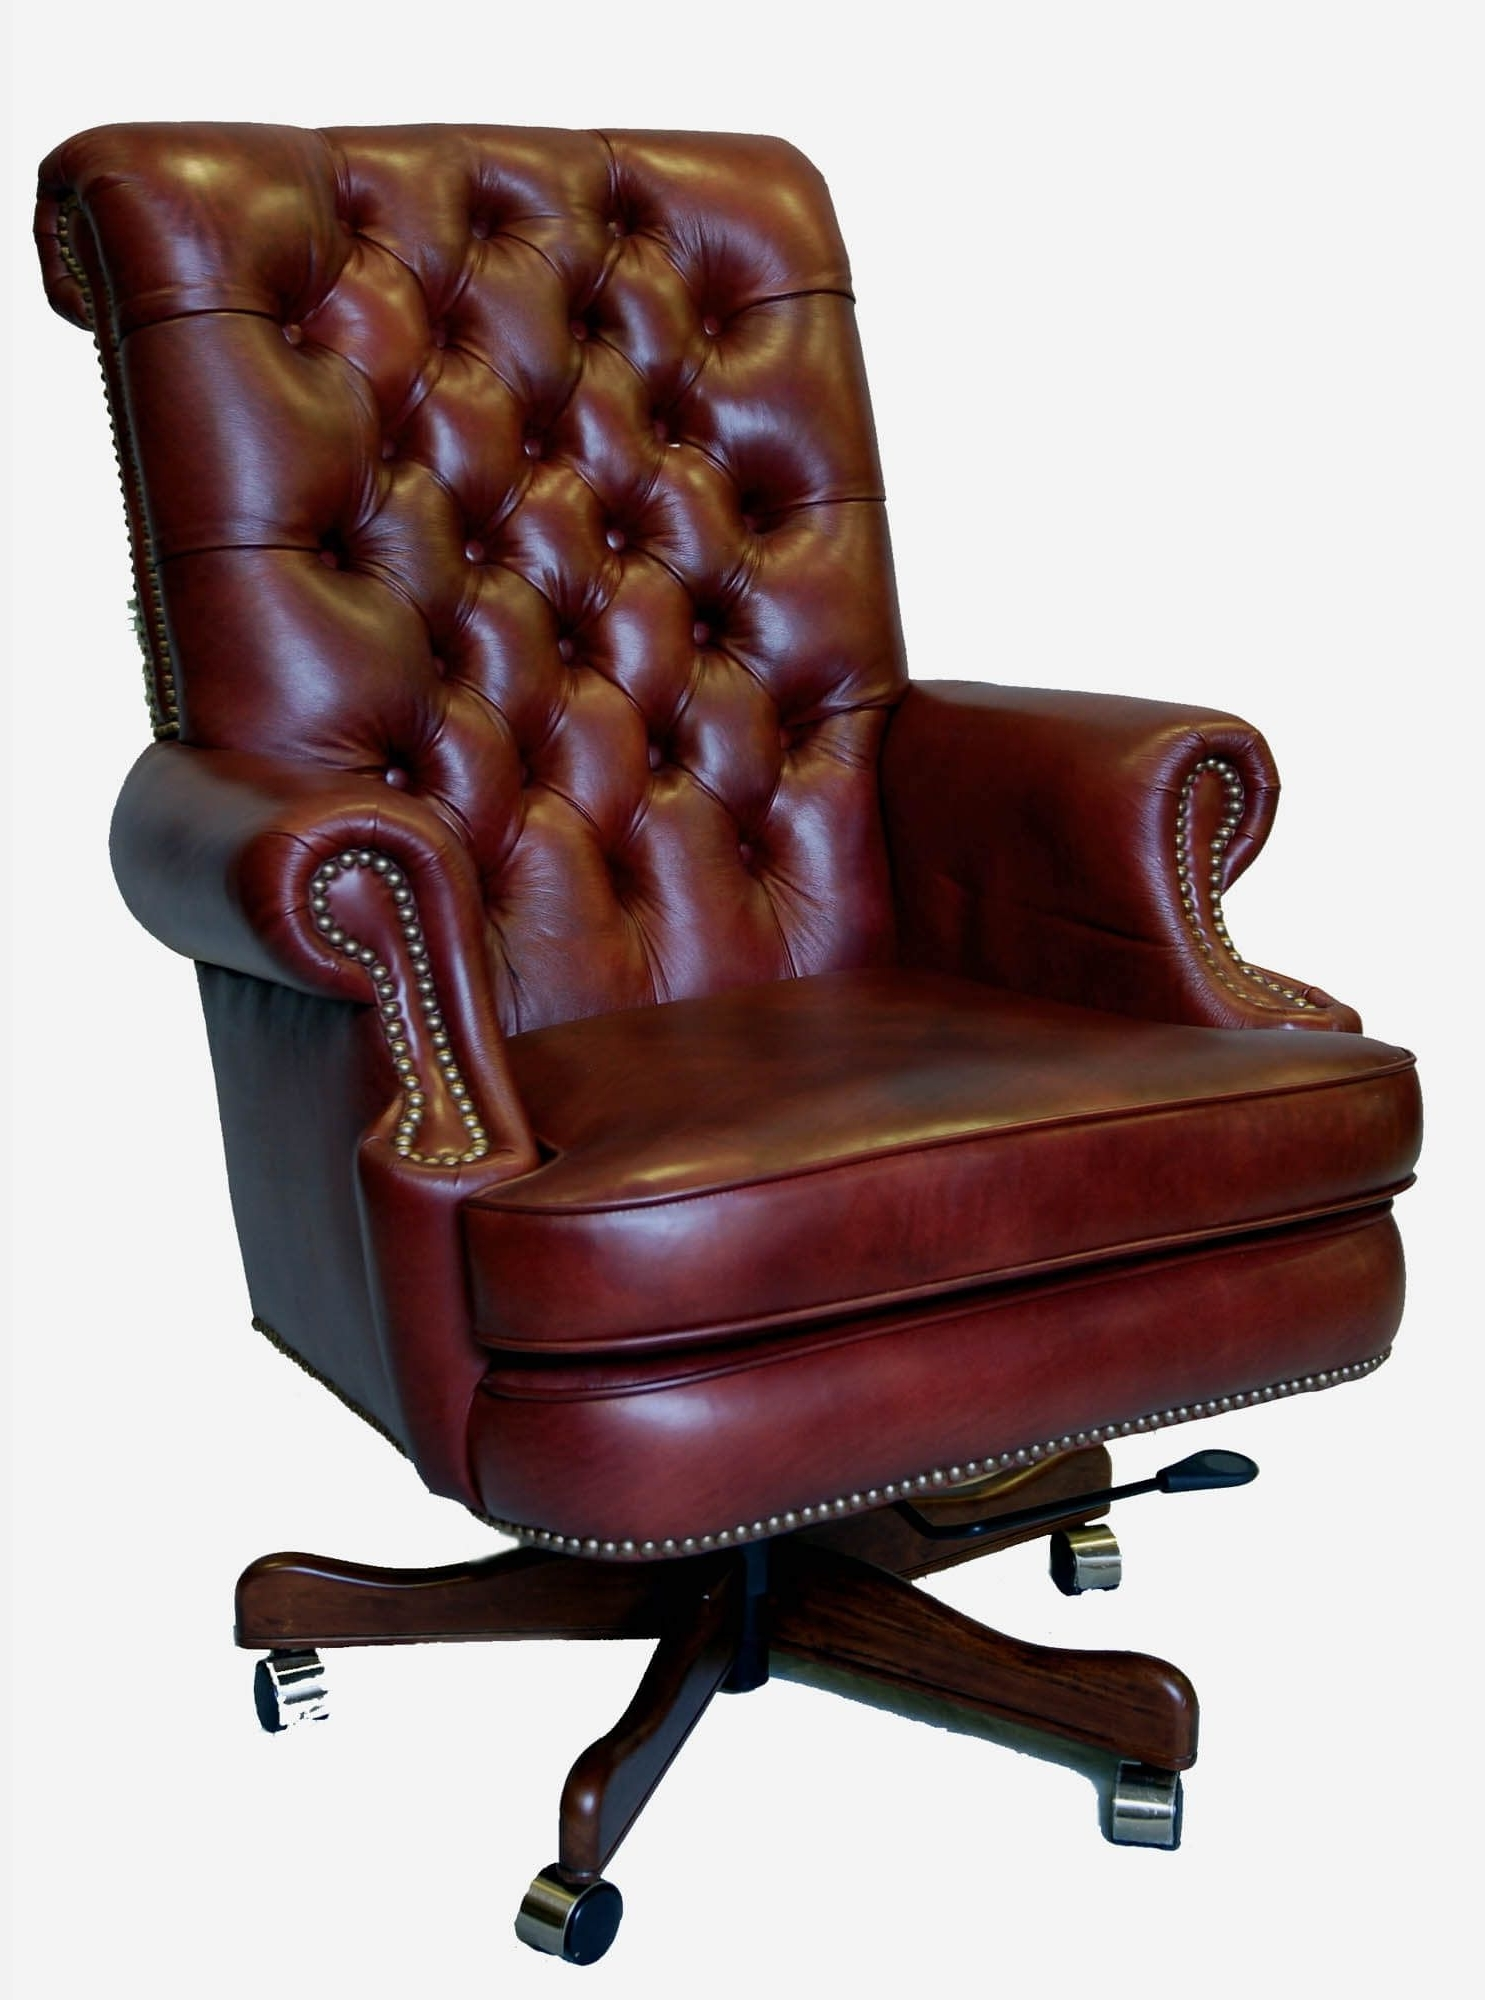 Most Recent Leather Swivel Recliner Executive Office Chairs With Regard To Executive Chairs Manufacturers And Dealers In New Delhi (View 18 of 20)